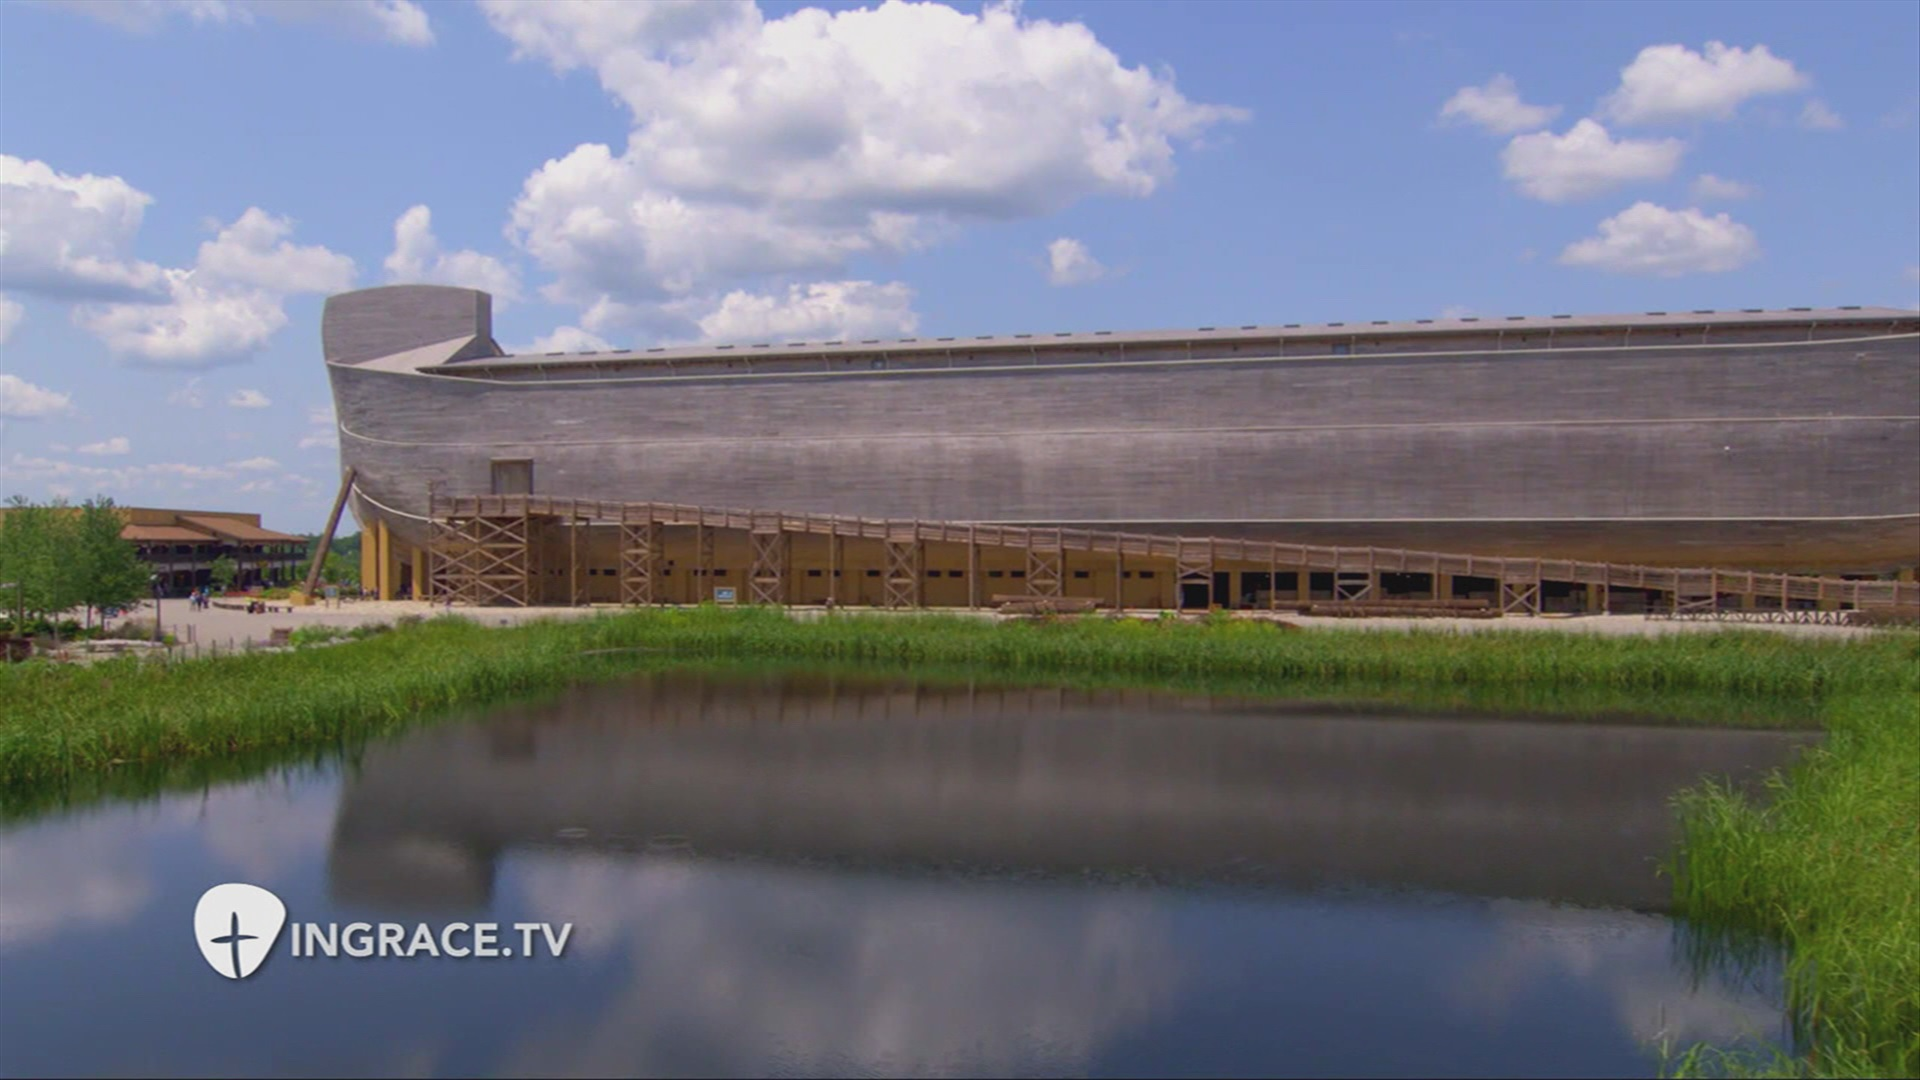 A Tour of Noah's Ark with Bodie Hodge Part 2